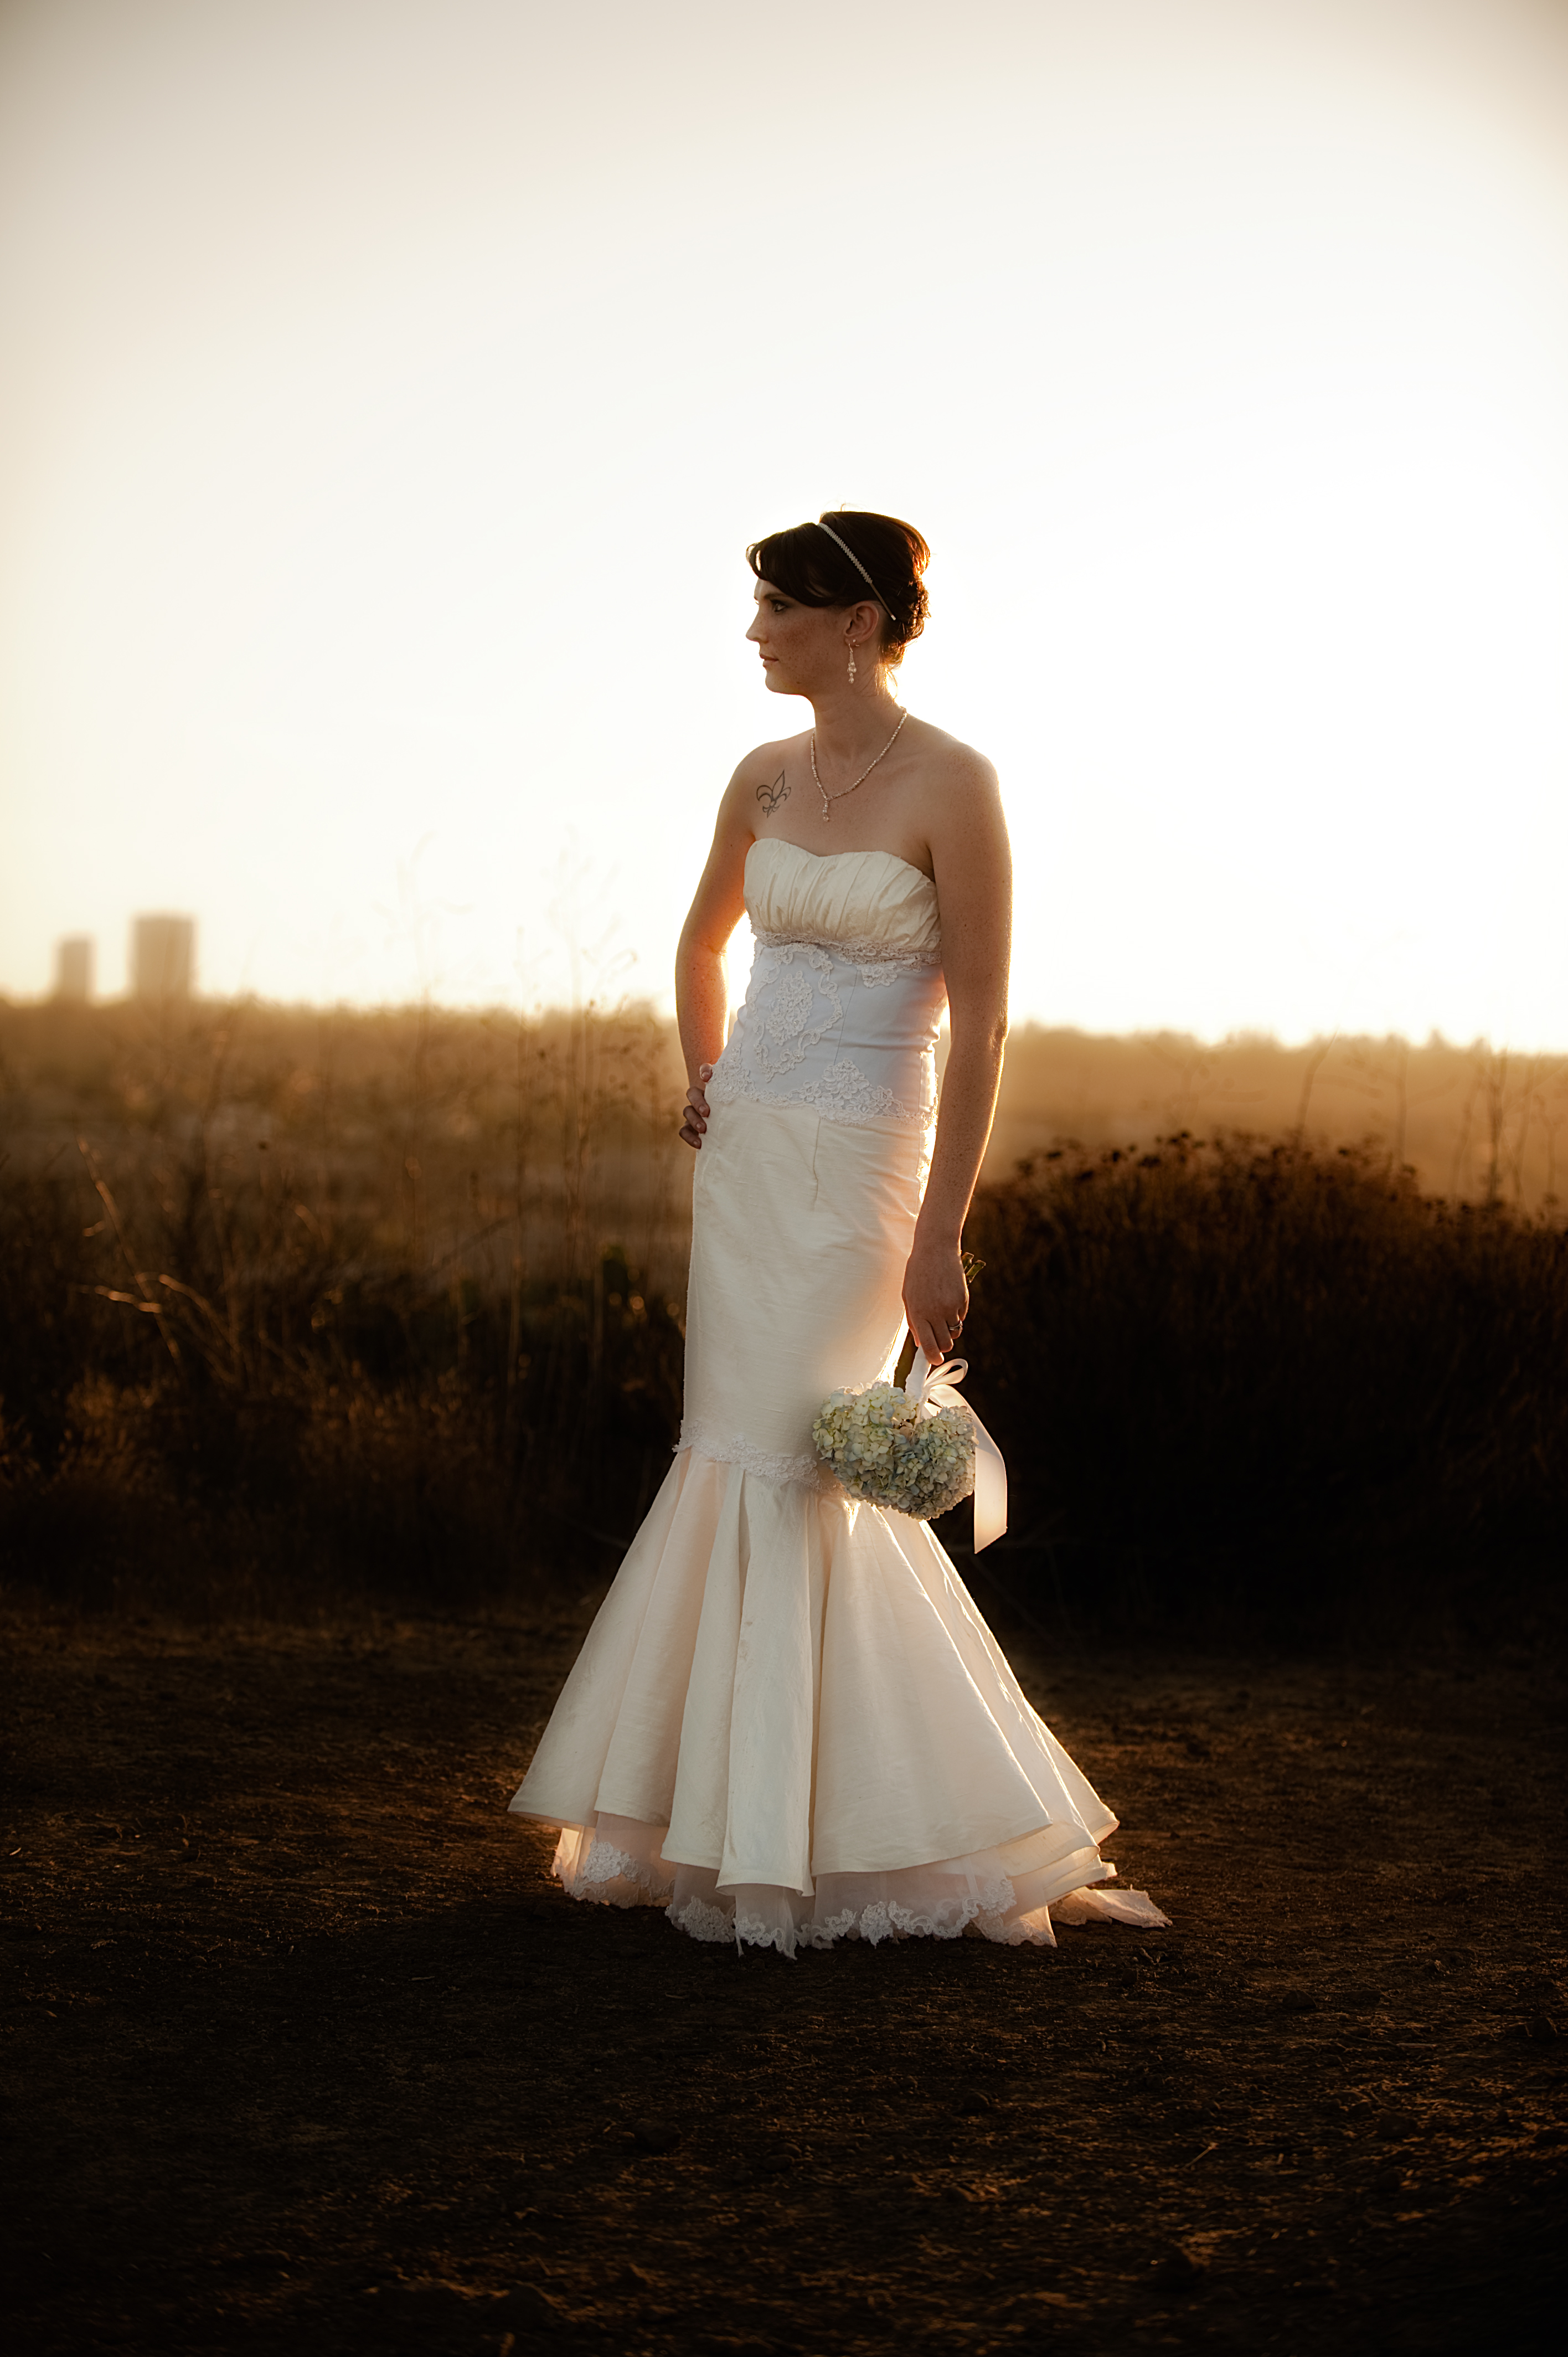 Bridal gowns in orange county elle couture designs blog for Wedding dresses orange county